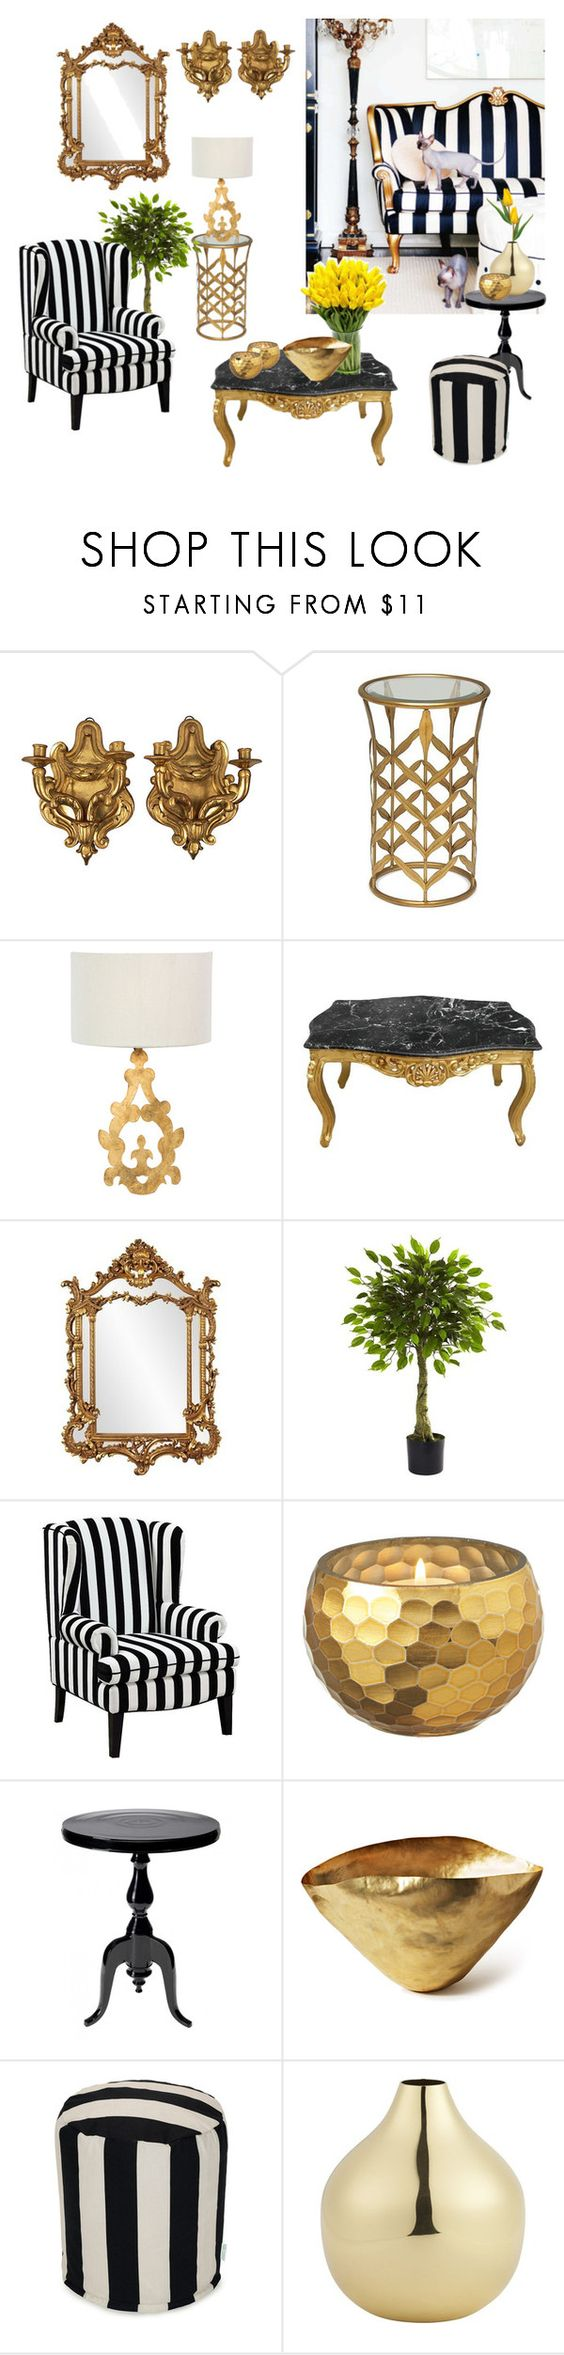 """""""Modern Baroque"""" by dezaval ❤ liked on Polyvore featuring interior, interiors, interior design, home, home decor, interior decorating, Maitland-Smith, Howard Elliott, Nearly Natural and Universal Lighting and Decor"""